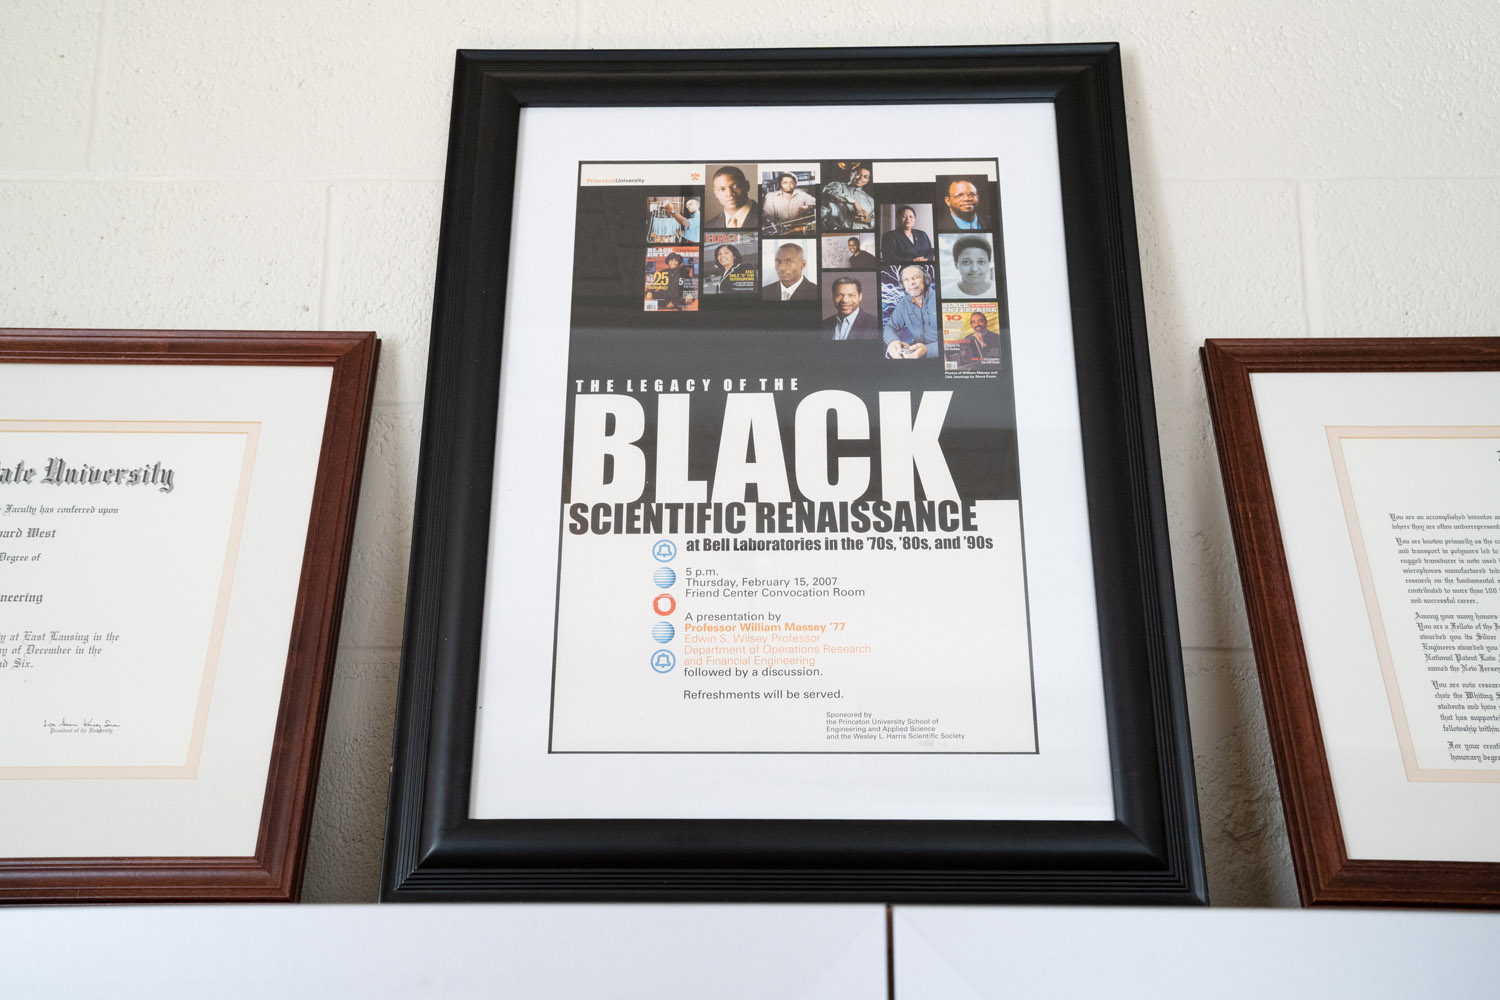 A framed announcement of an event in which Jim West was honored.